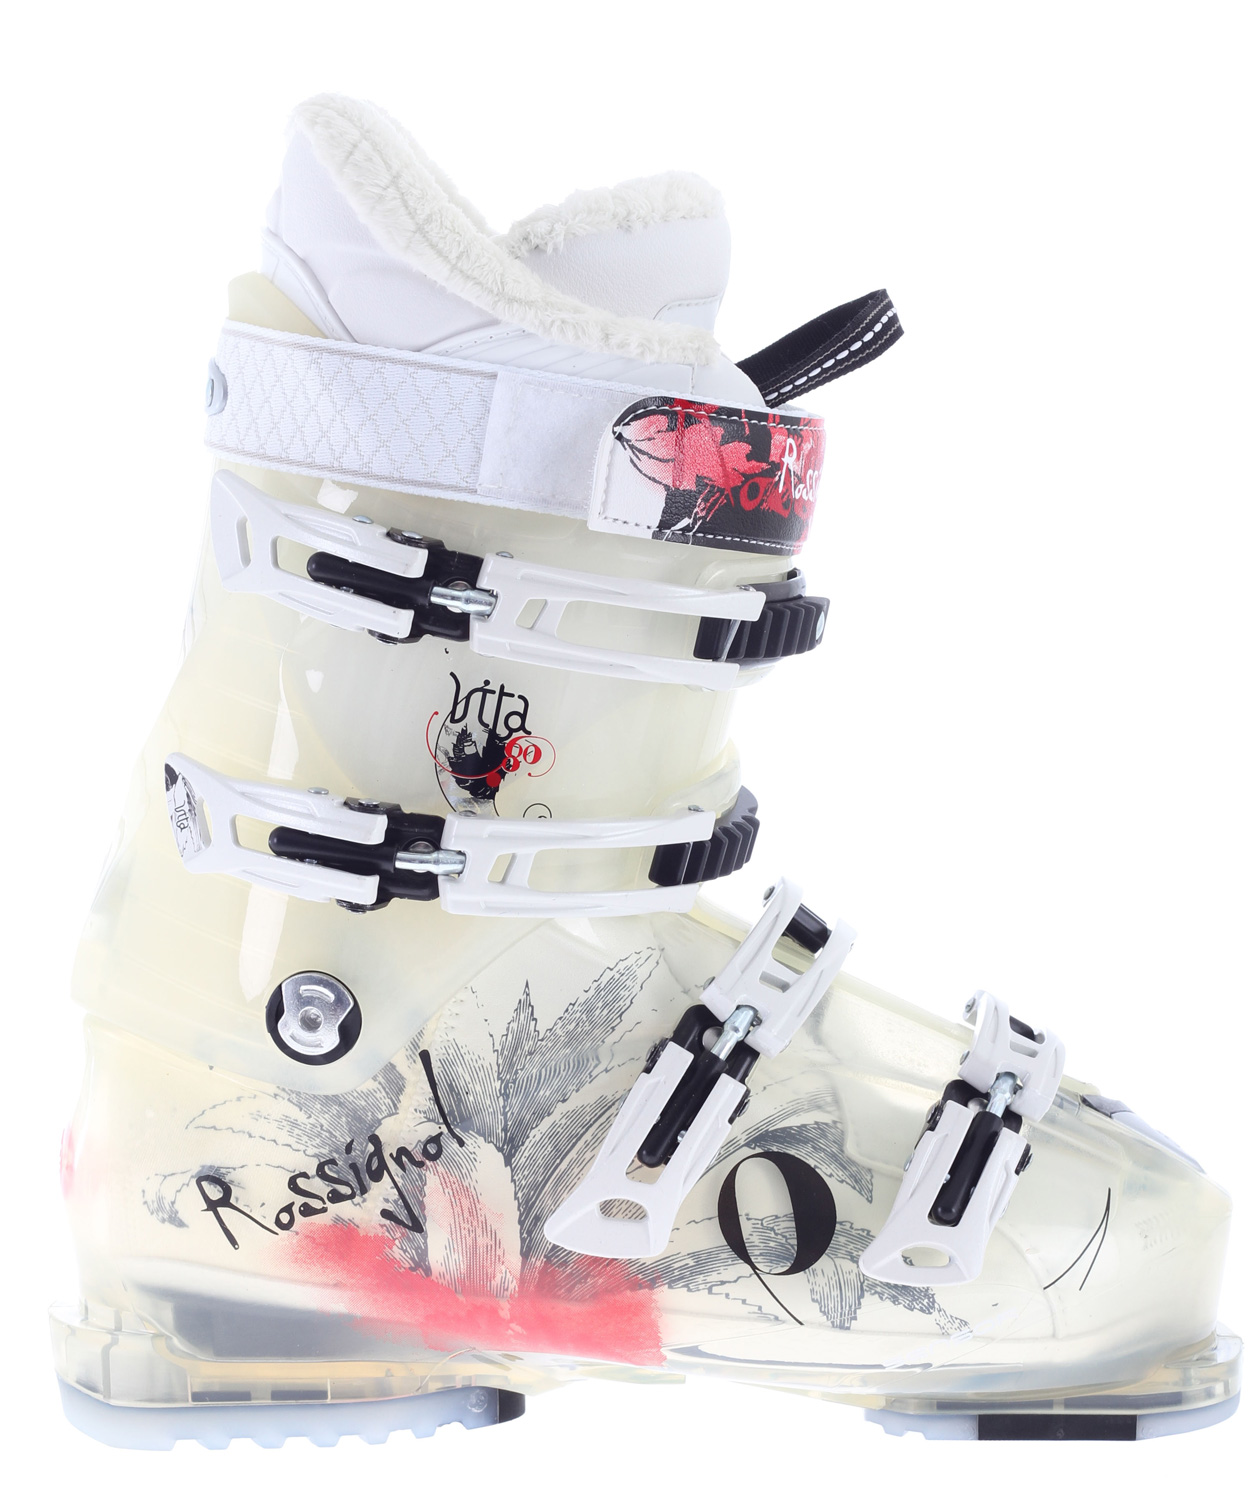 Ski Expert and aspiring expert women skiers that need a medium volume fit that offers performance and comfort.Key Features of the Rossignol Vita Sensor 80 Ski Boots: Flex index: 80 Last: 102mm - $183.96